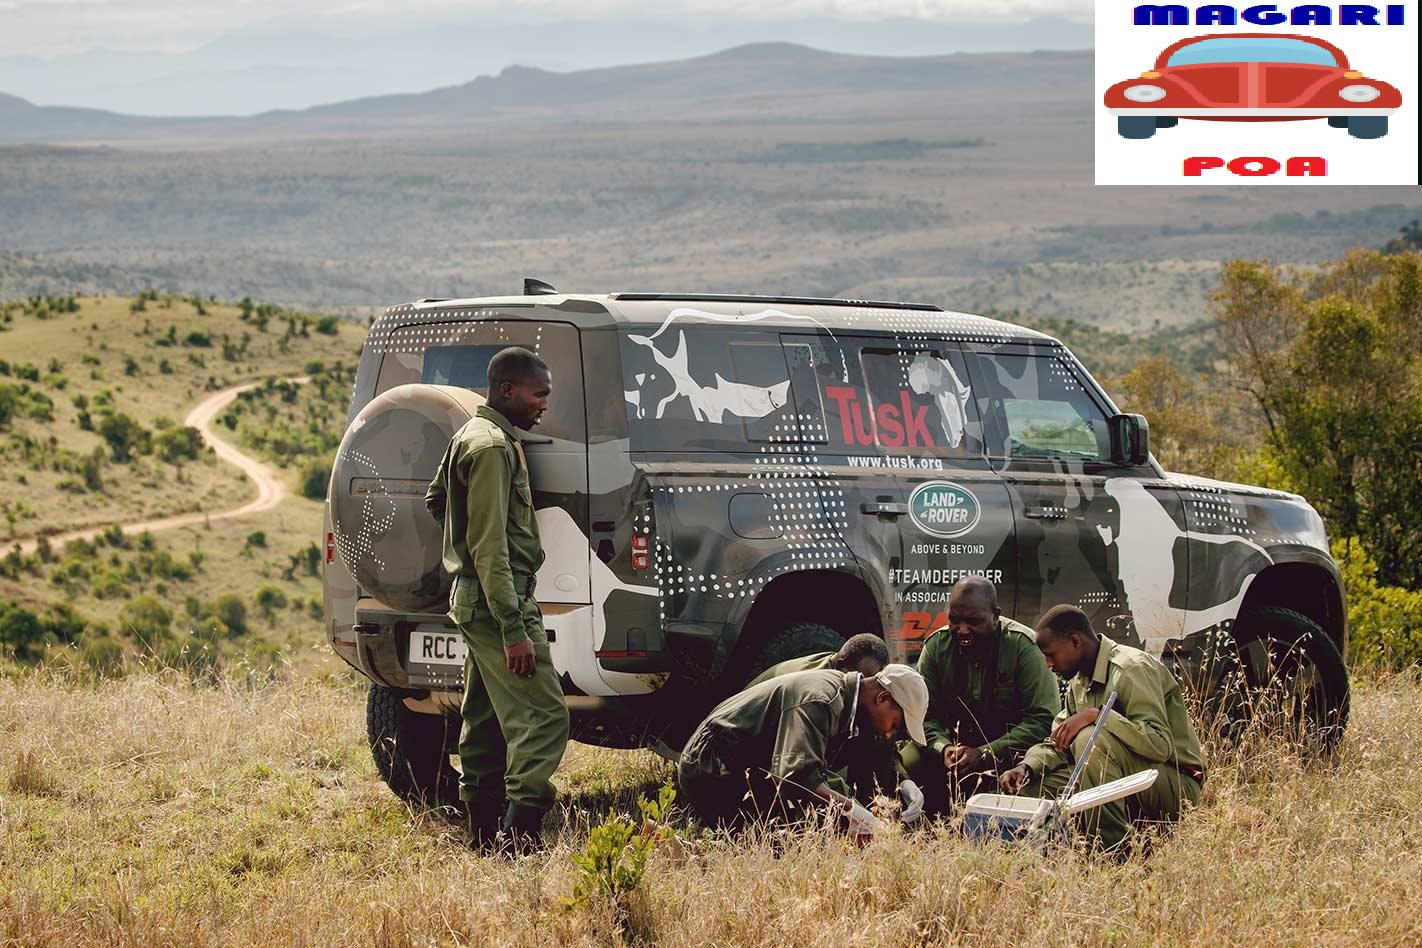 Leaked photos of the new Land Rover Defender prototype being tested in Kenya